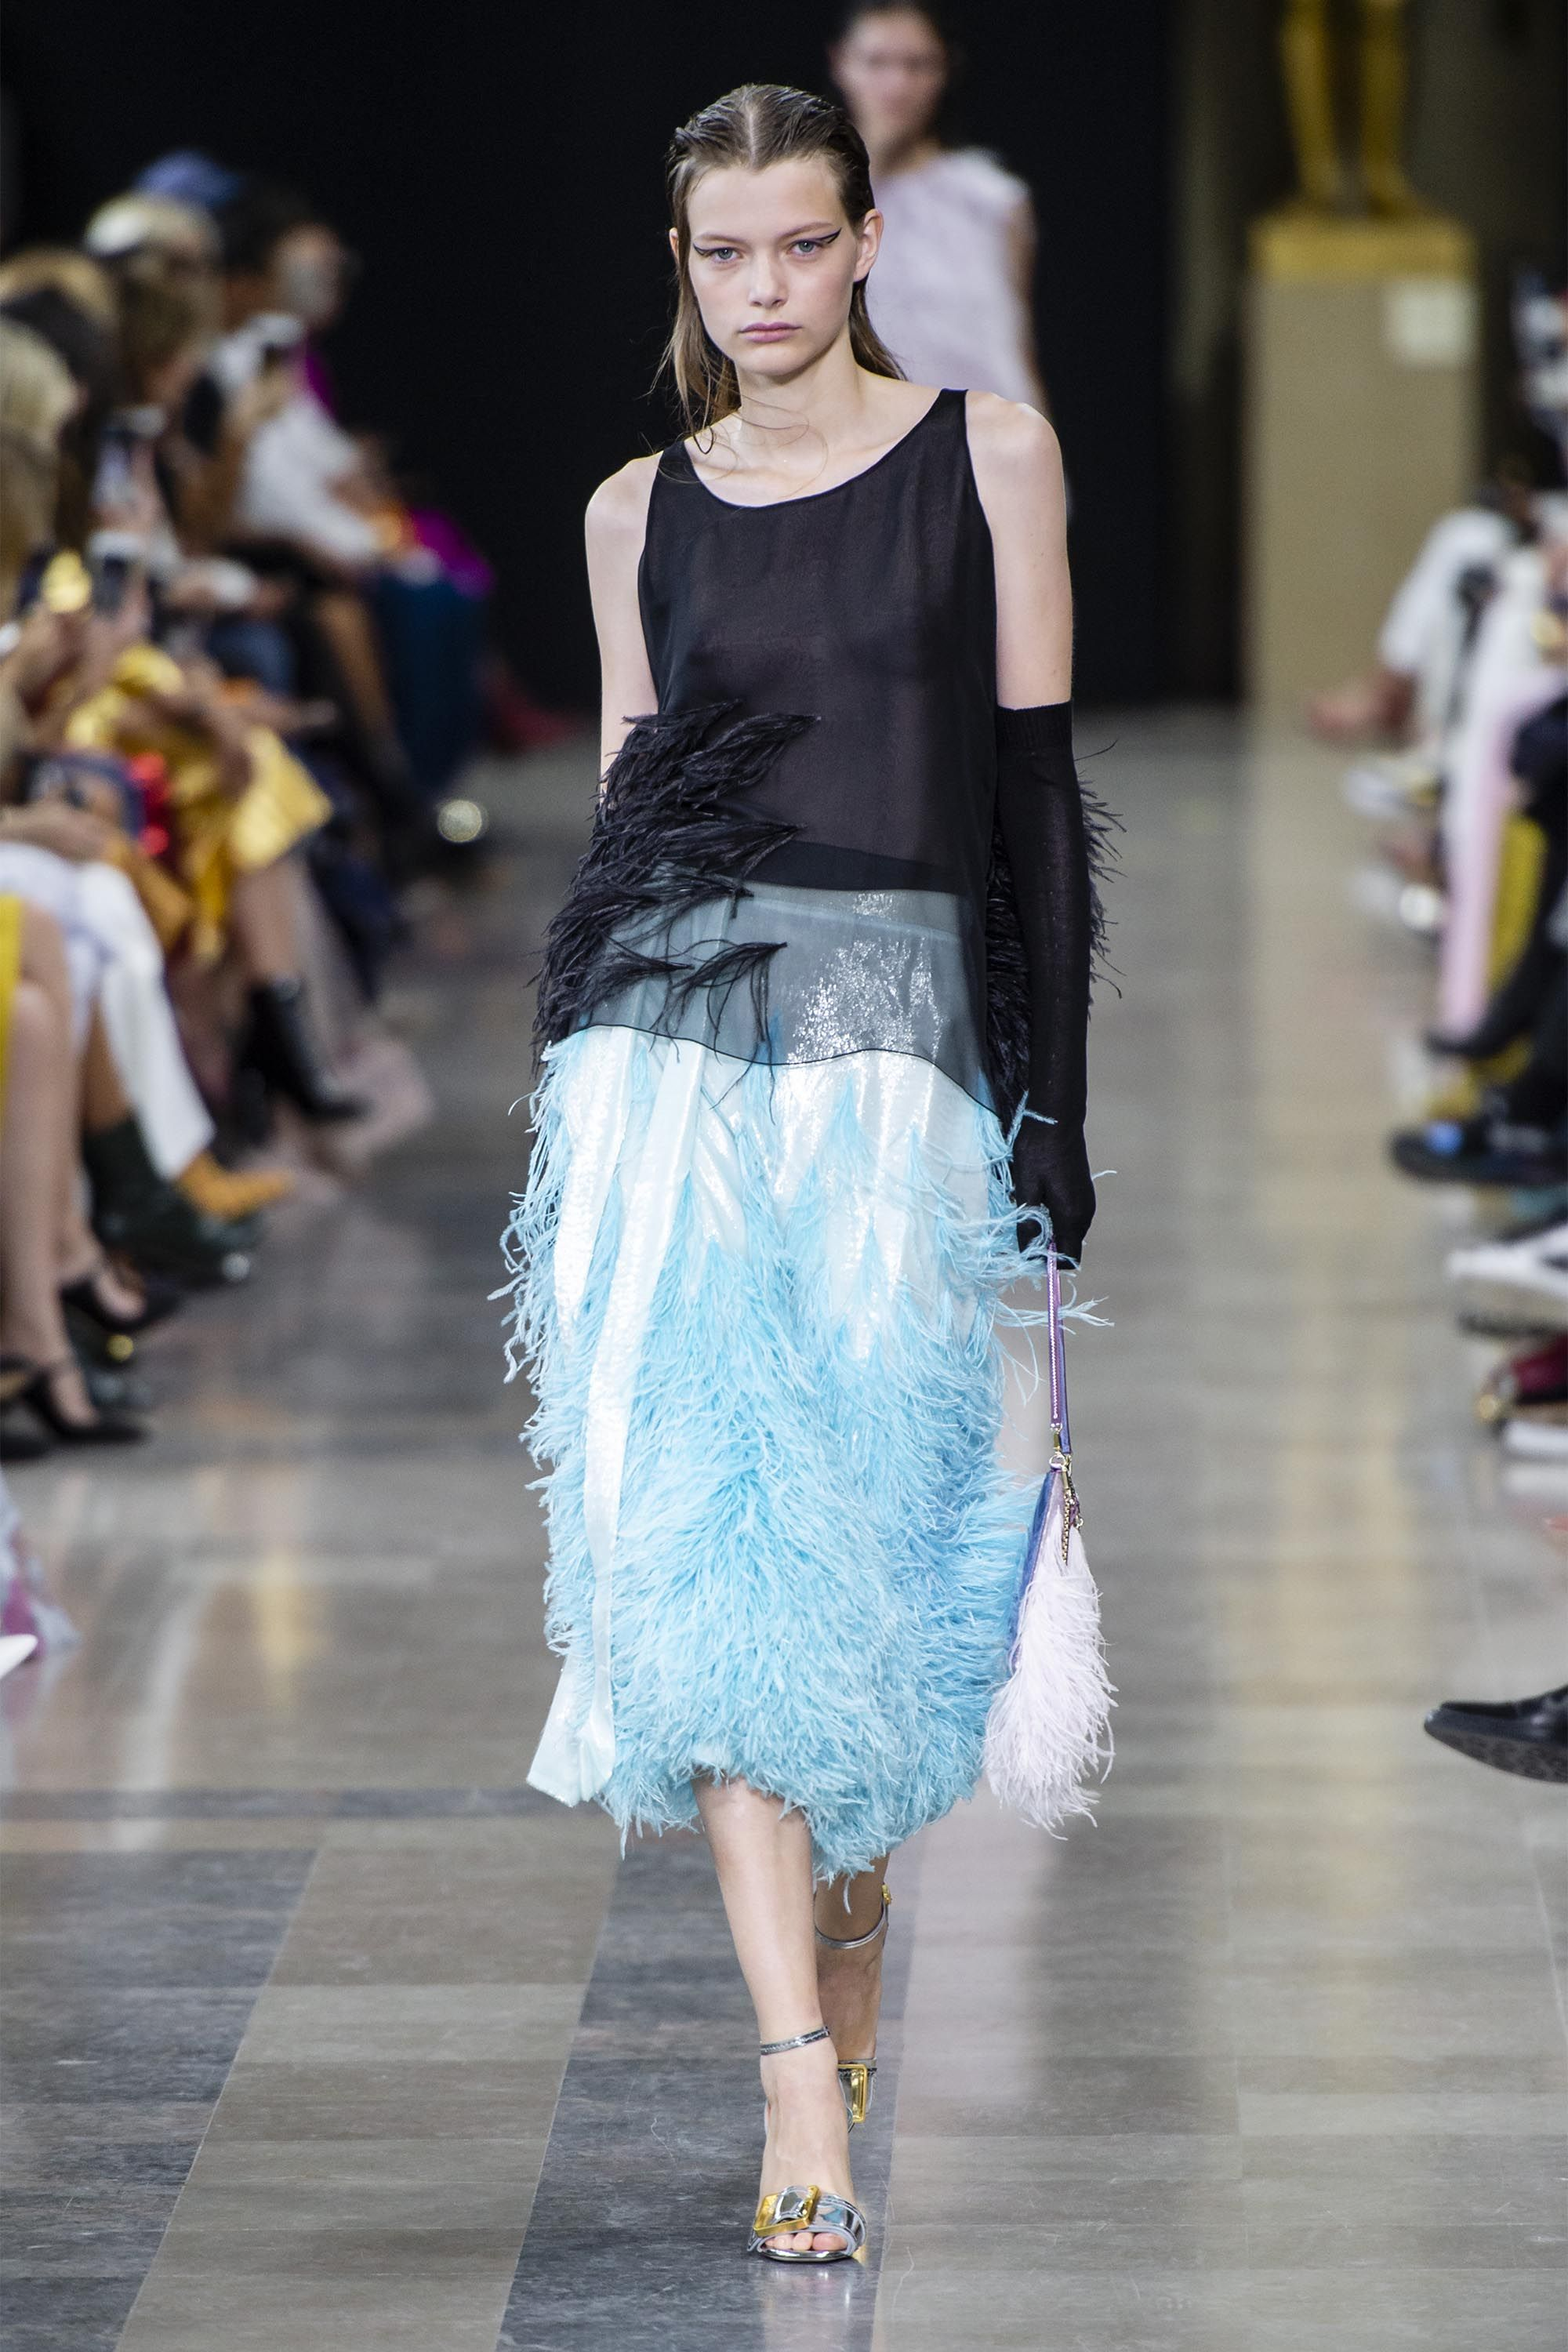 All the Trends You Need to Know from the Spring 2019 Runways - Spring 2019  Fashion Trends for Women 5c78da236